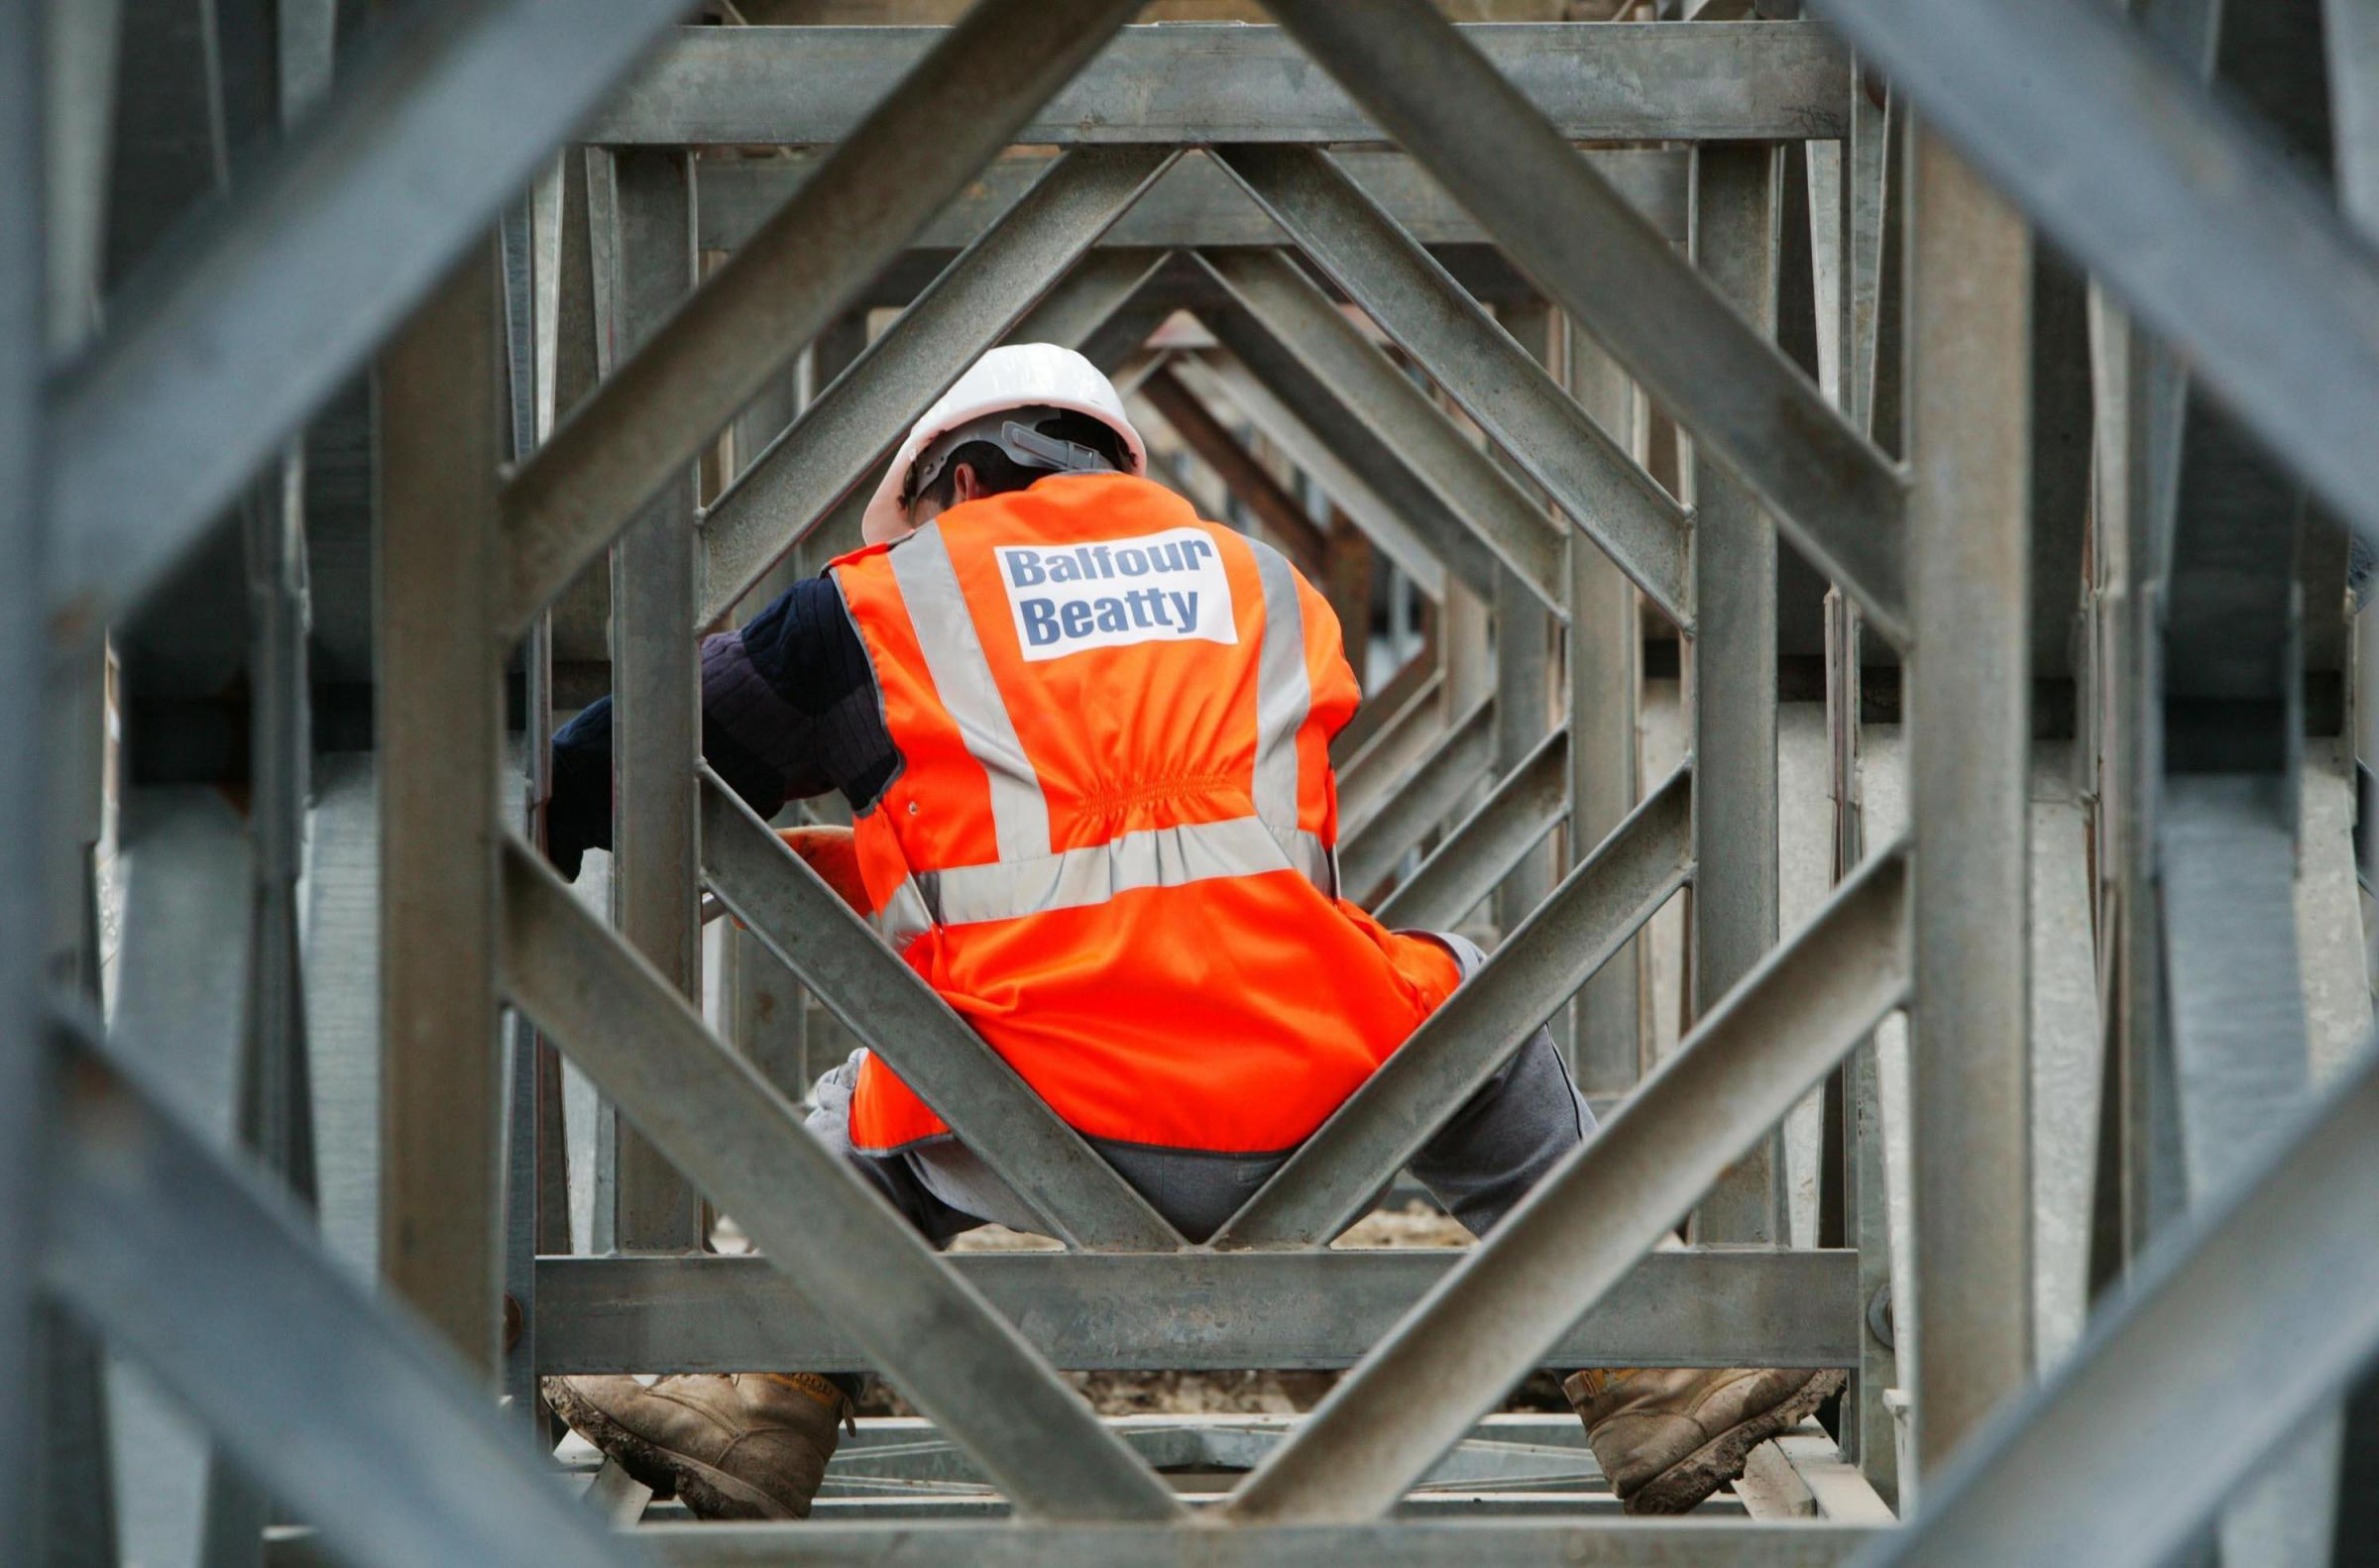 A Balfour Beatty worker on a construction site